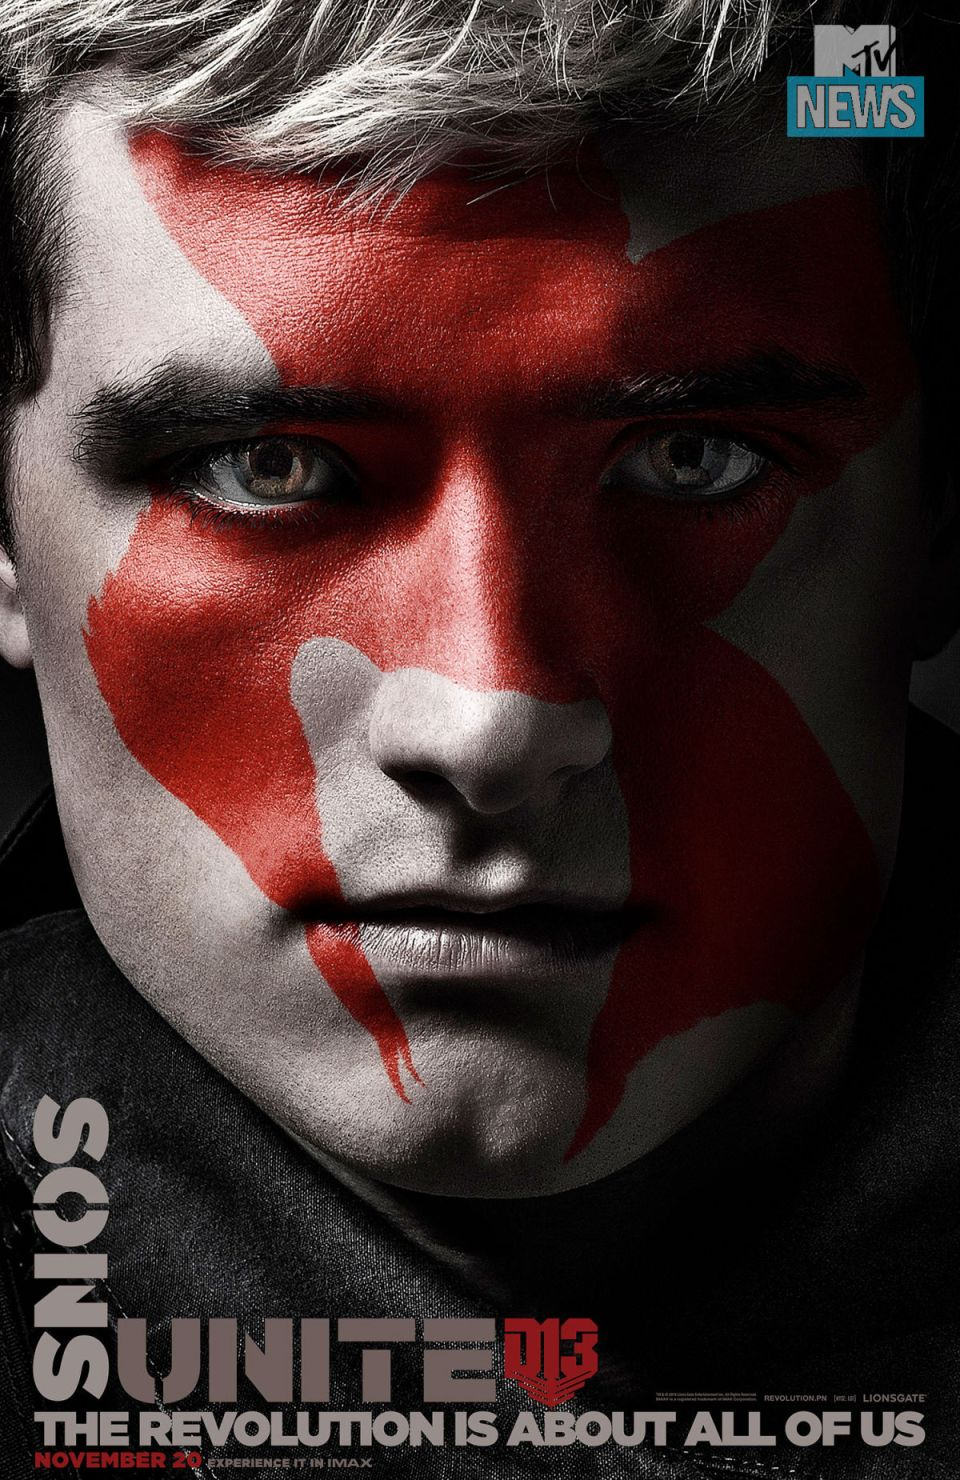 The Hunger Games: Mockingjay – Part 2 Comic-Con posters